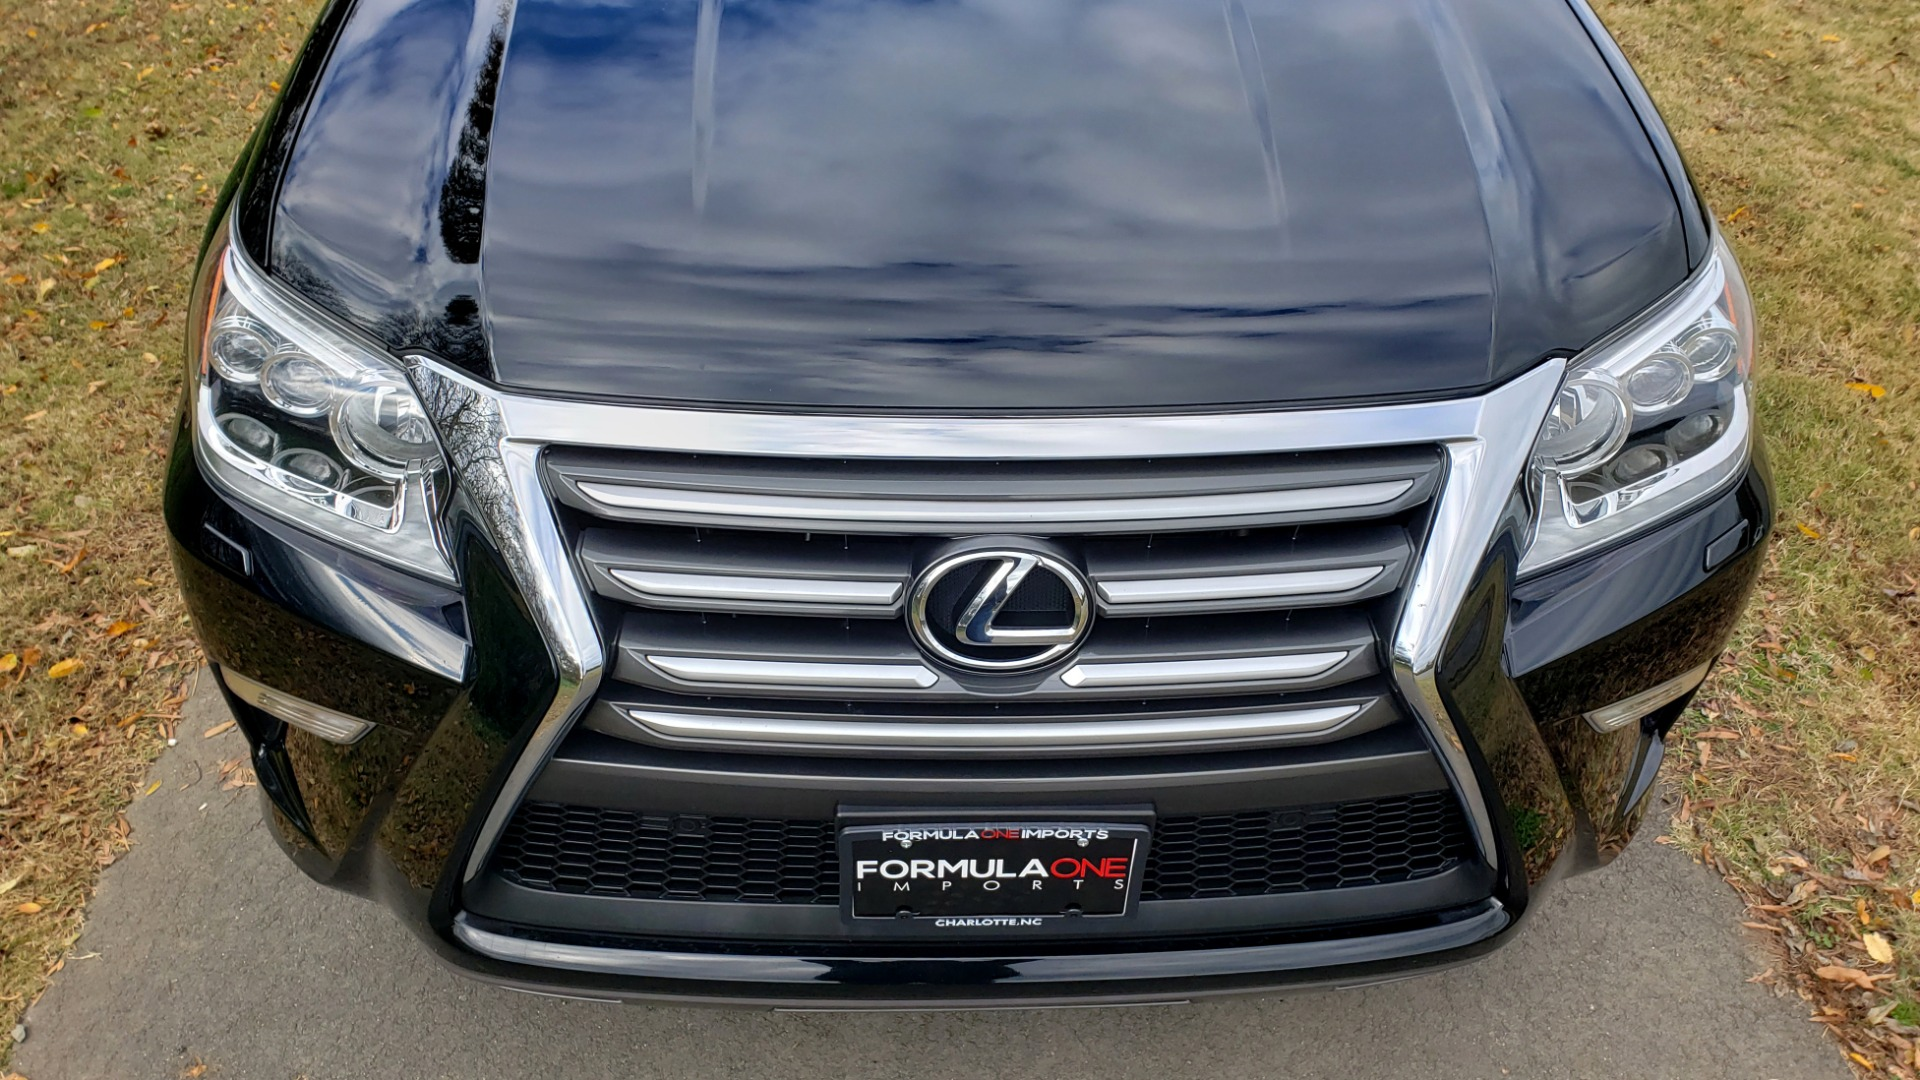 Used 2017 Lexus GX 460 PREMIUM / 4WD / NAV / SUNROOF / 3-ROW / BSM / REARVIEW for sale $34,995 at Formula Imports in Charlotte NC 28227 26